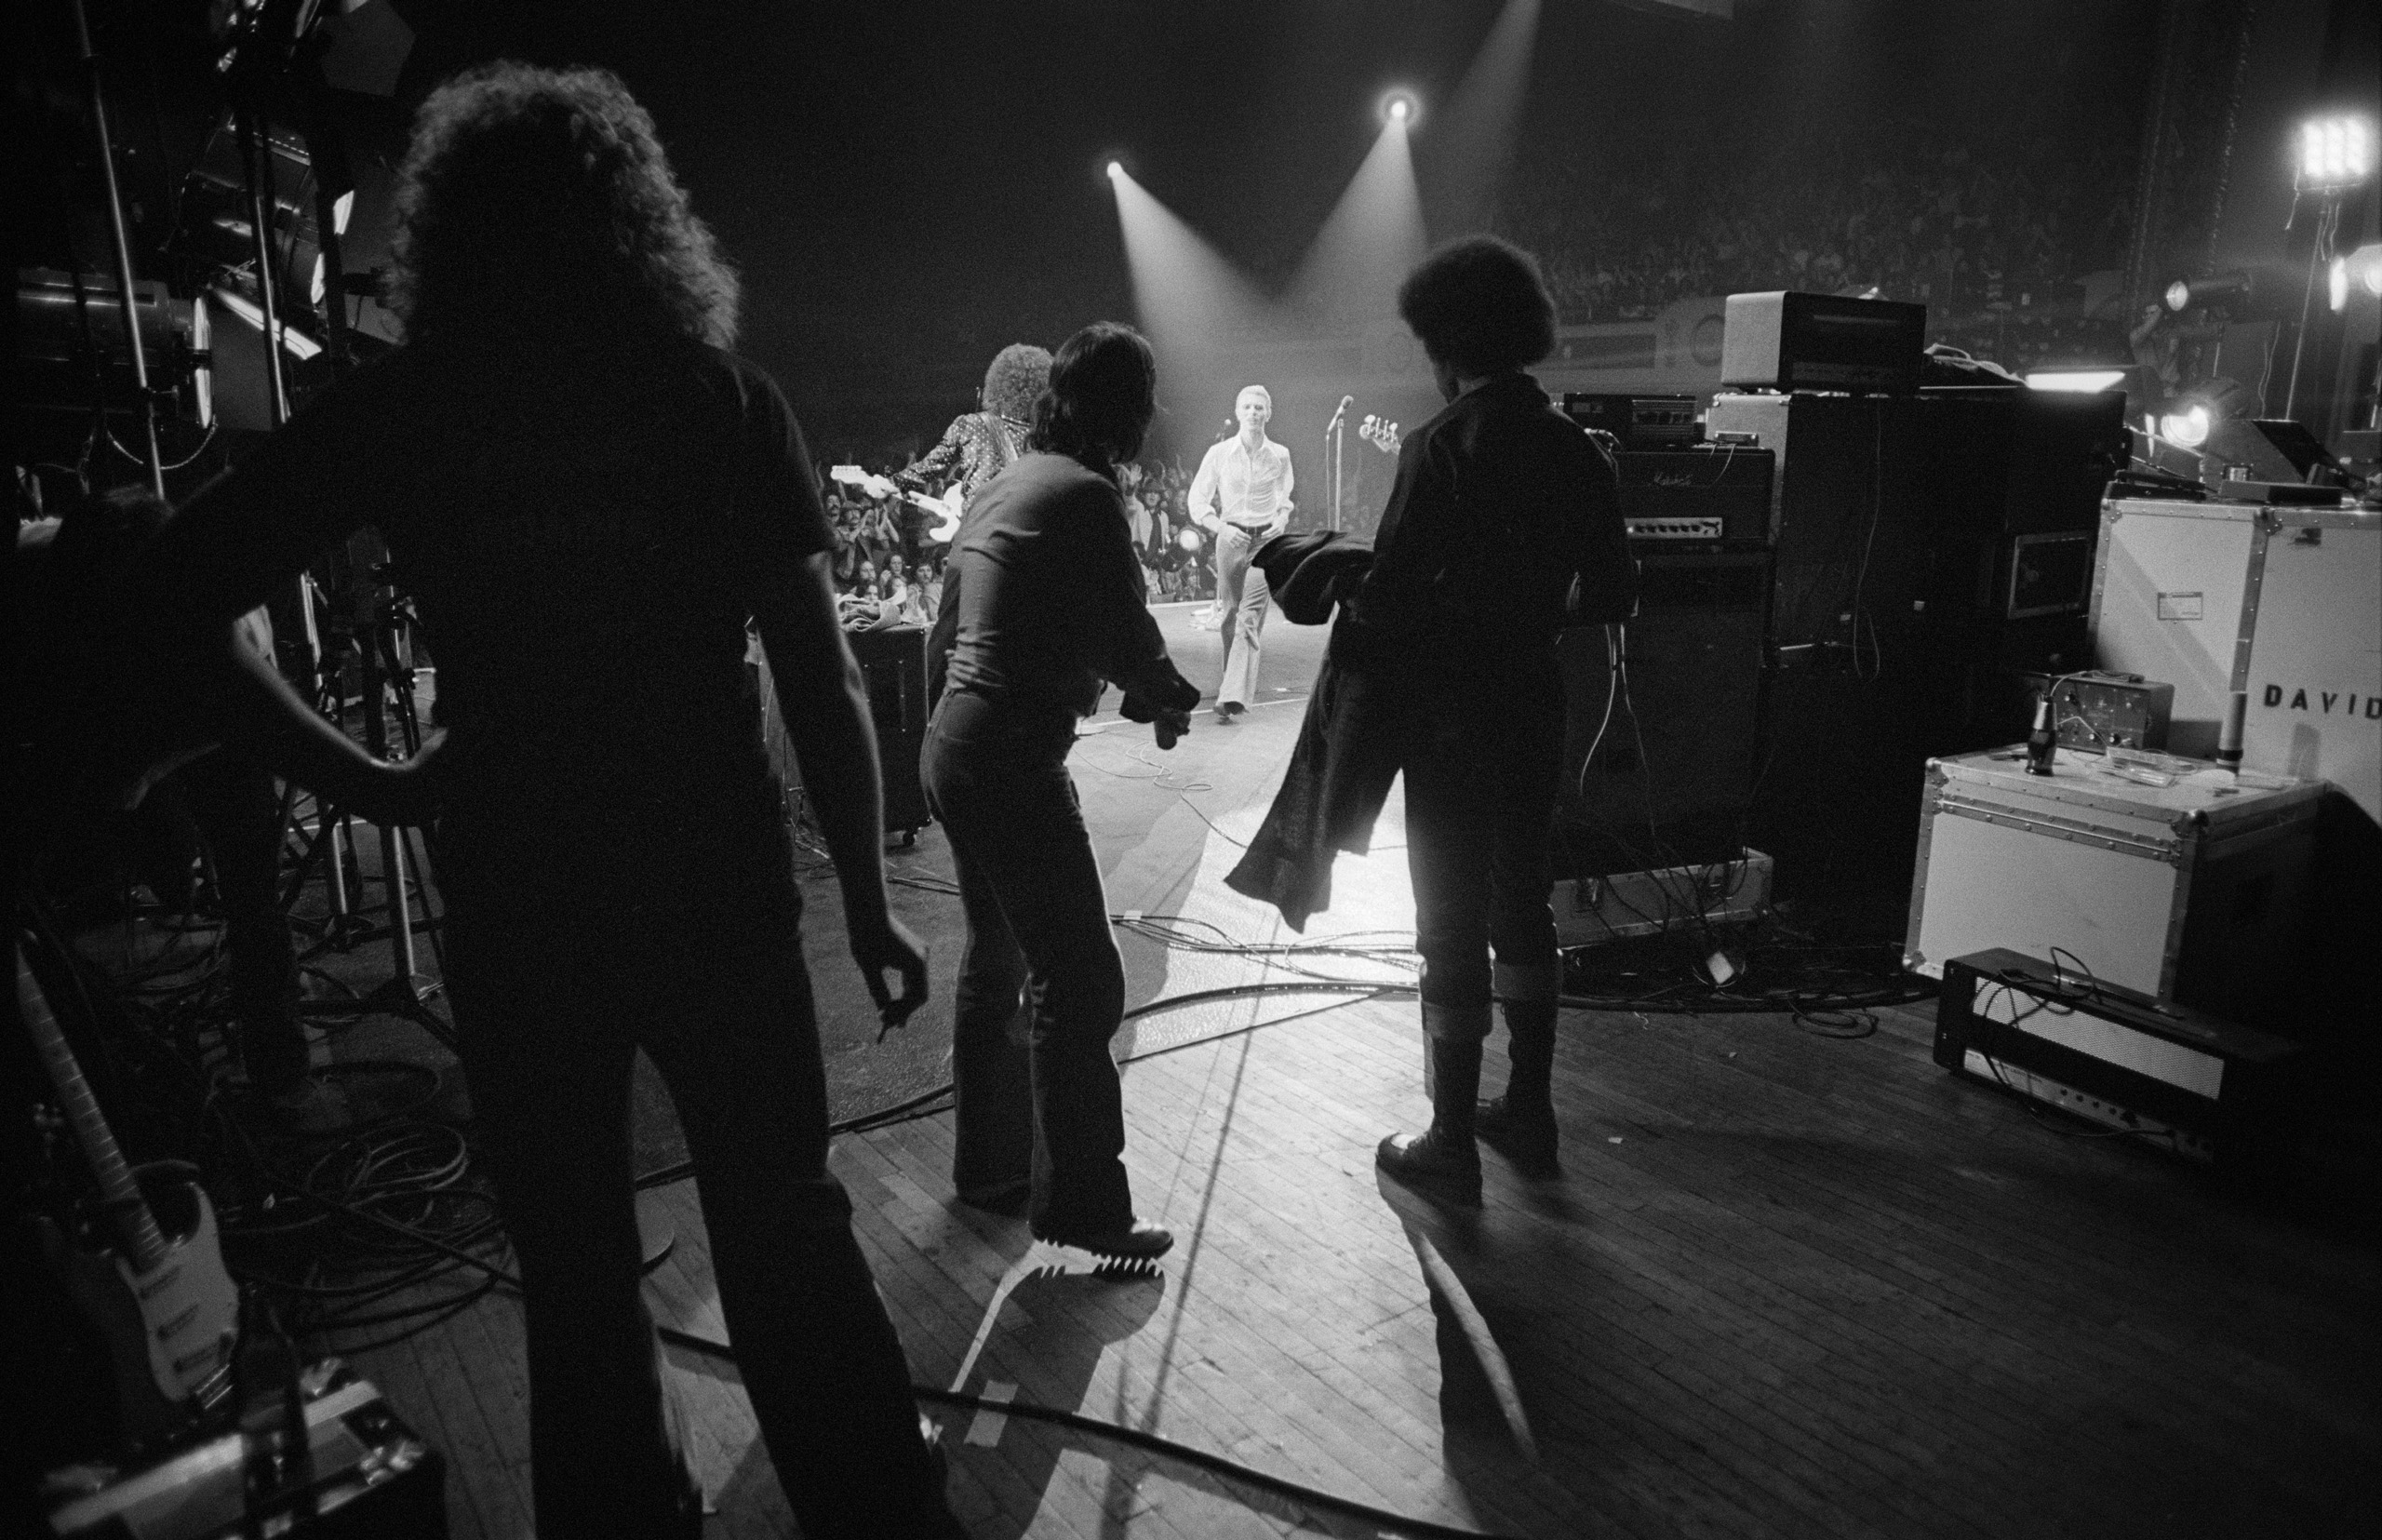 Bowie runs off stage towards his crew, during a stop on the Isolar Tour at Olympia Stadium in Detroit, Michigan, 1976.